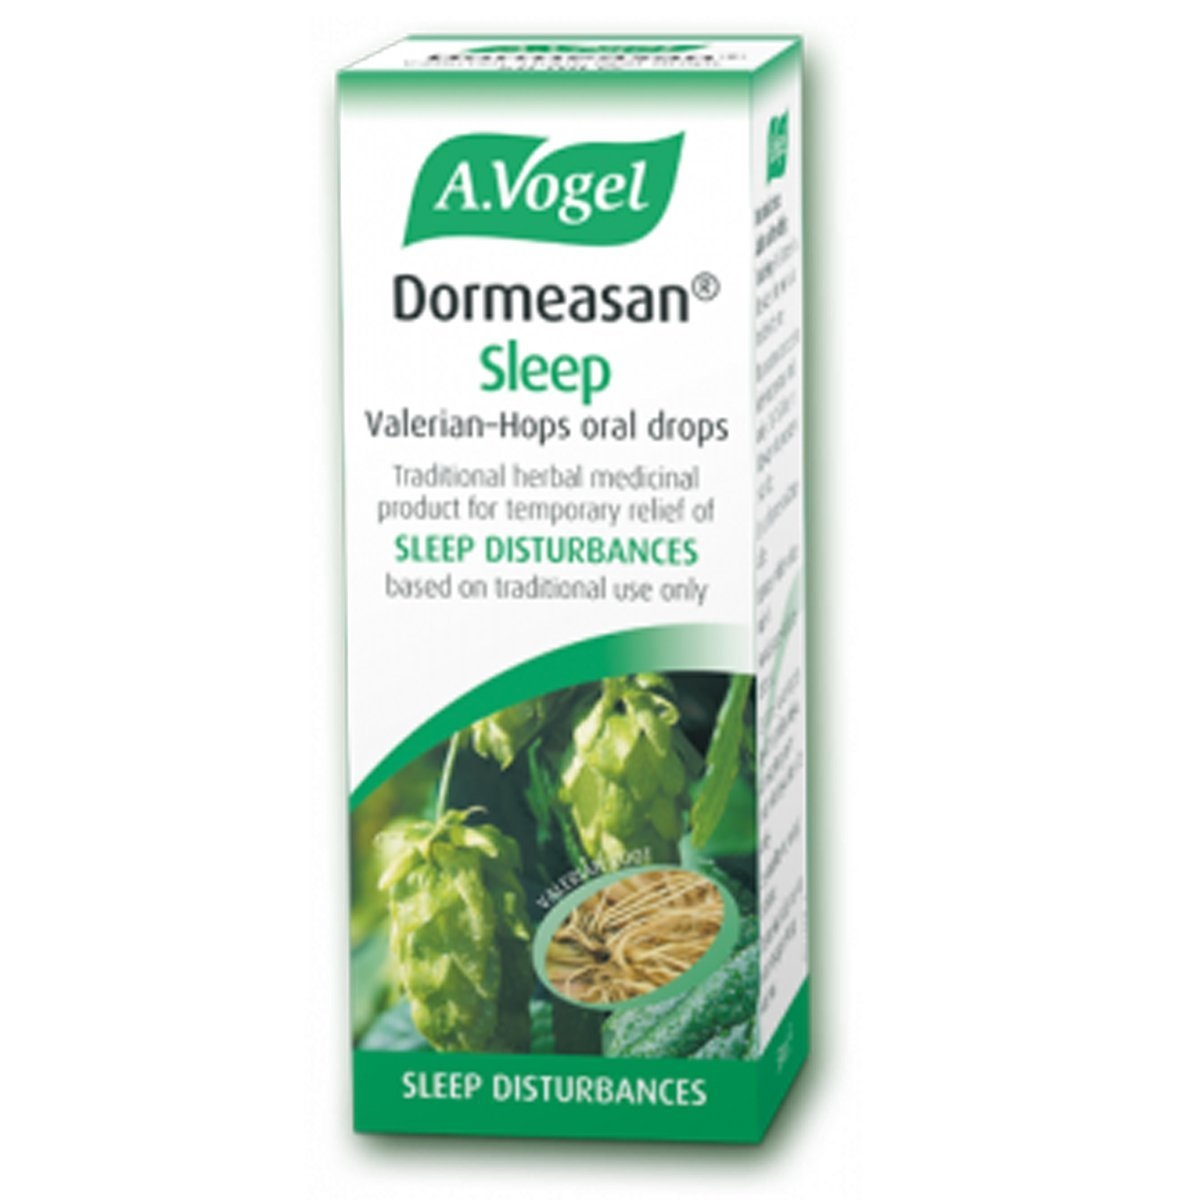 A. Vogel Dormeasan Valerian-Hops Herbal Sleep Remedy With Extracts of Freshly Harvested, Organically Grown Valerian Root and Hops, 50ml (Pack of 2)